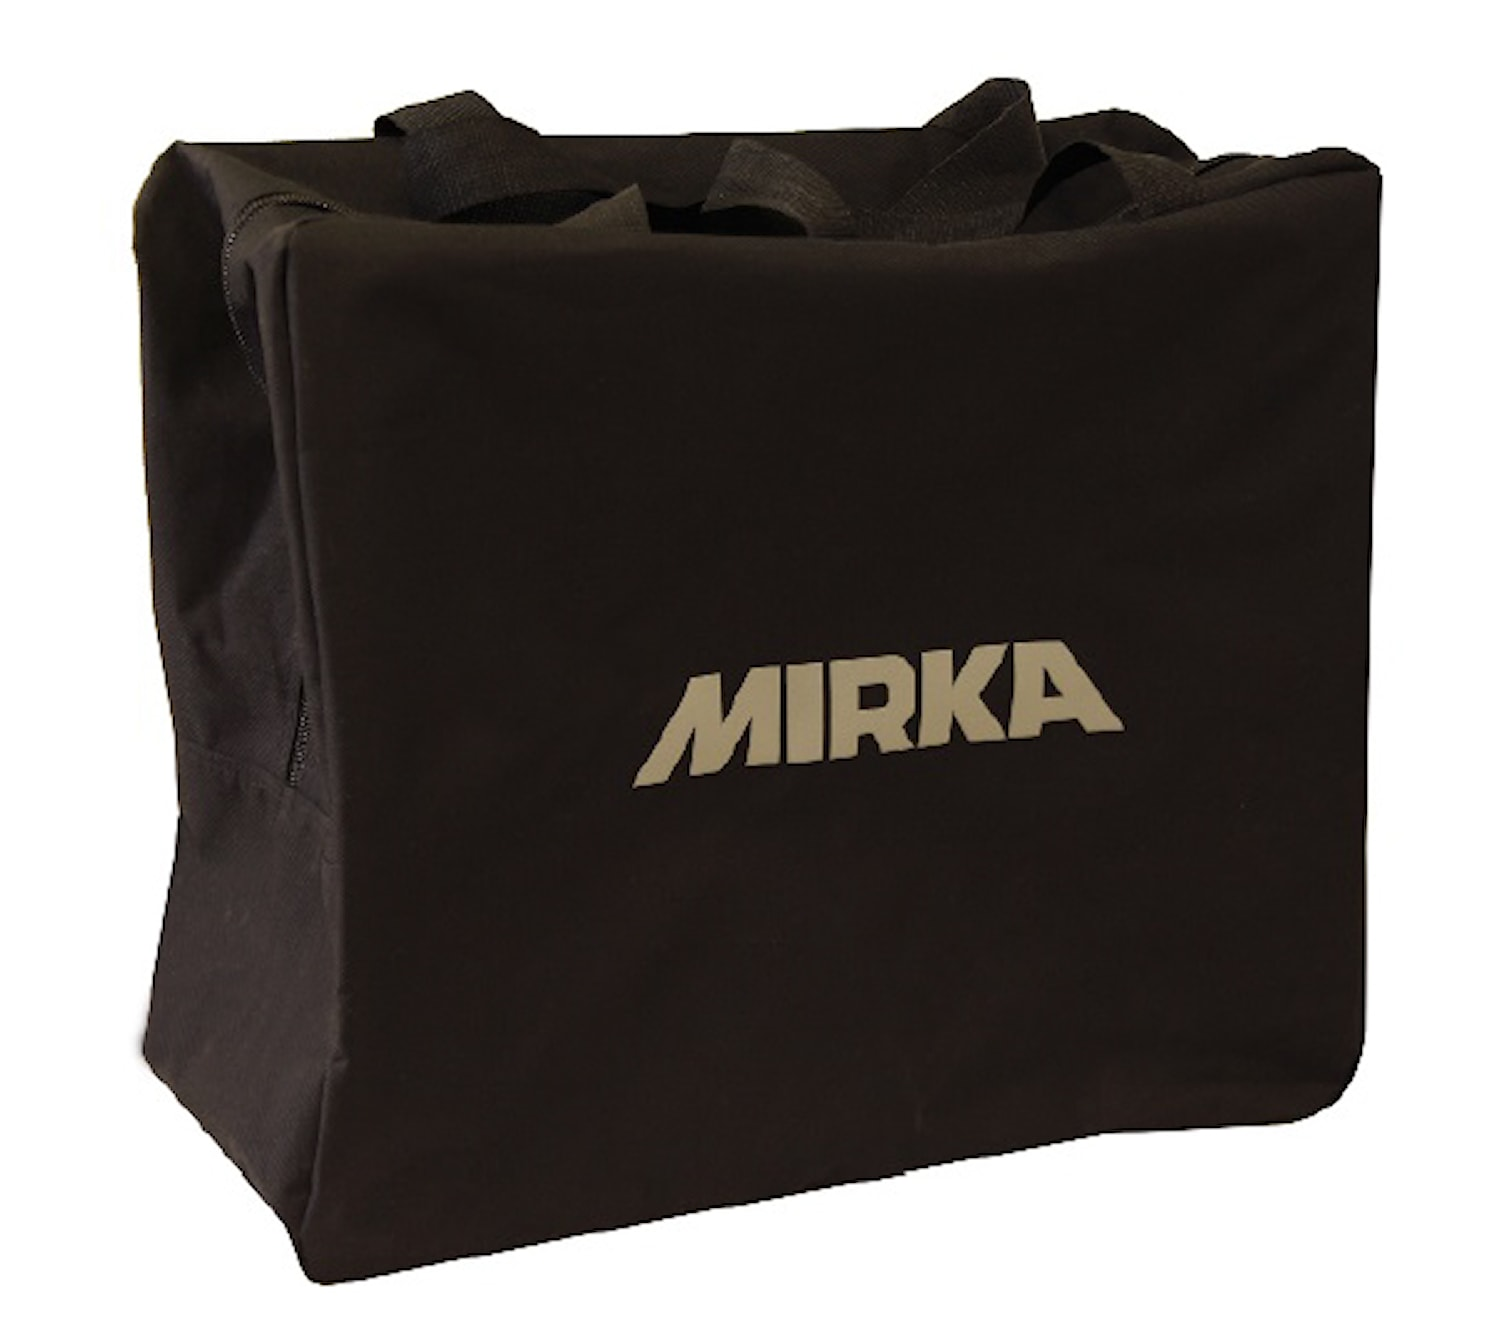 Mirka DEROS 680CV 150mm kit